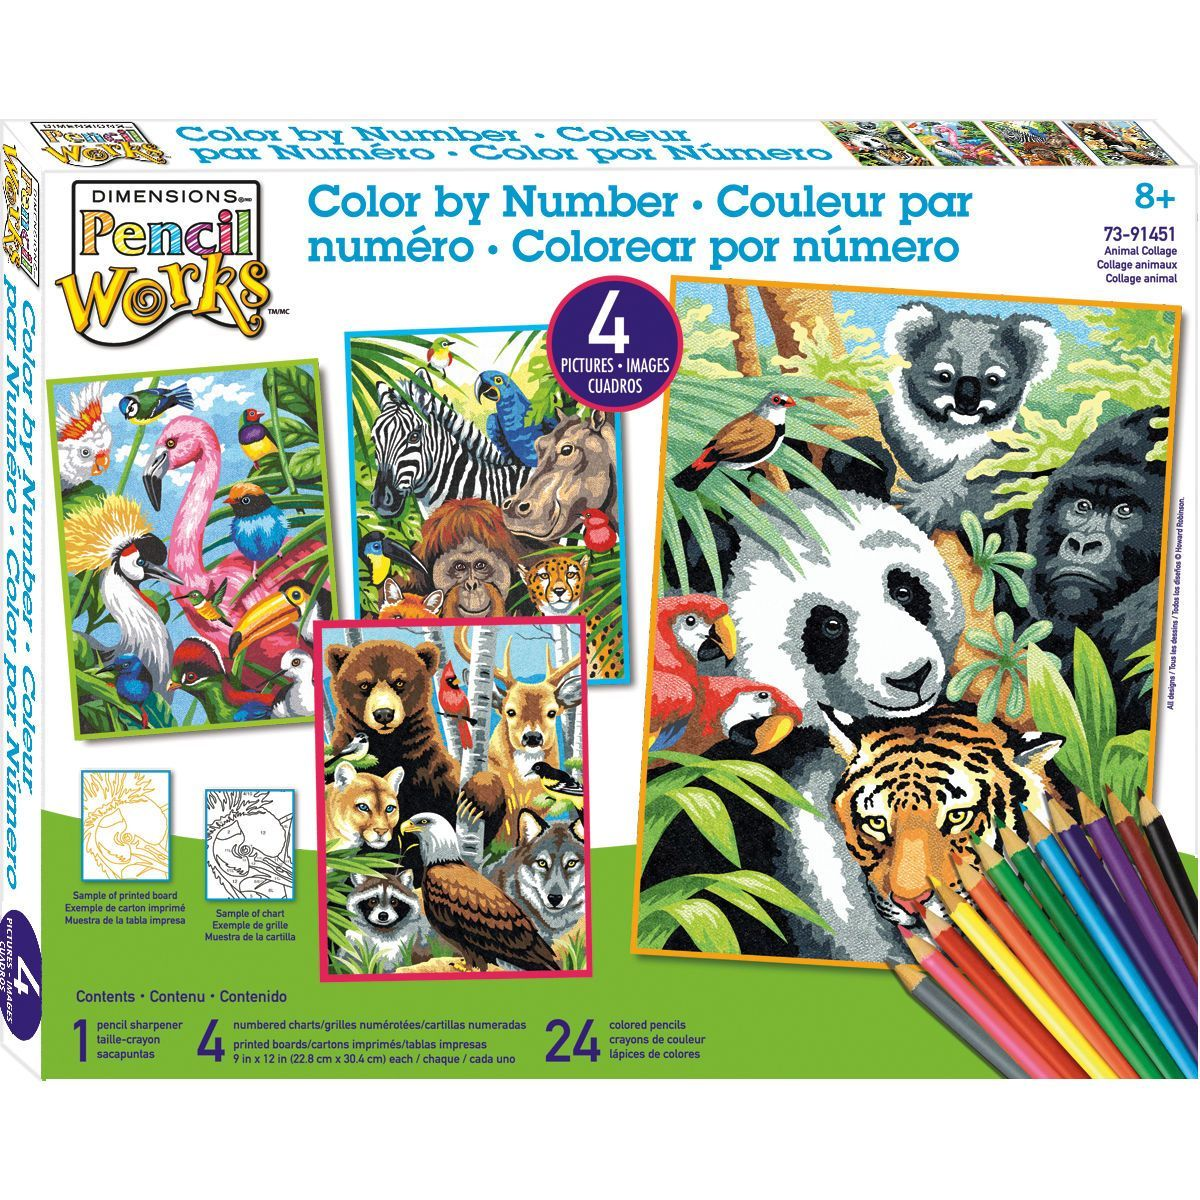 Dimensions Pencil Works Color By Number Kit Animal Collage ...